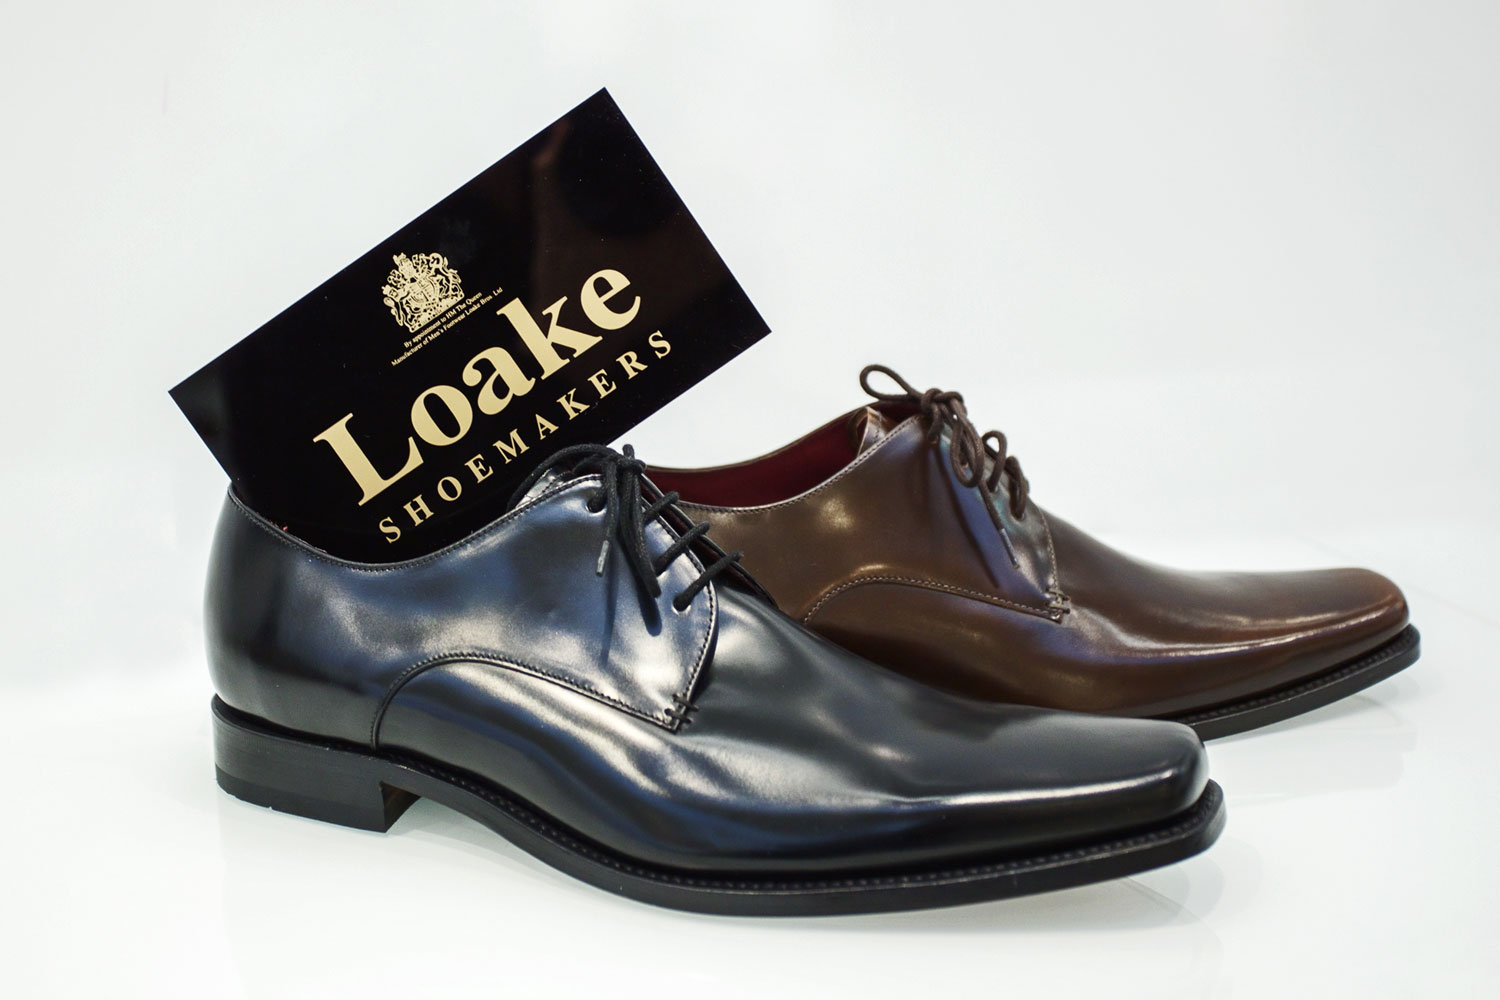 Loake Shoes - Adam Hillier Commercial Photography